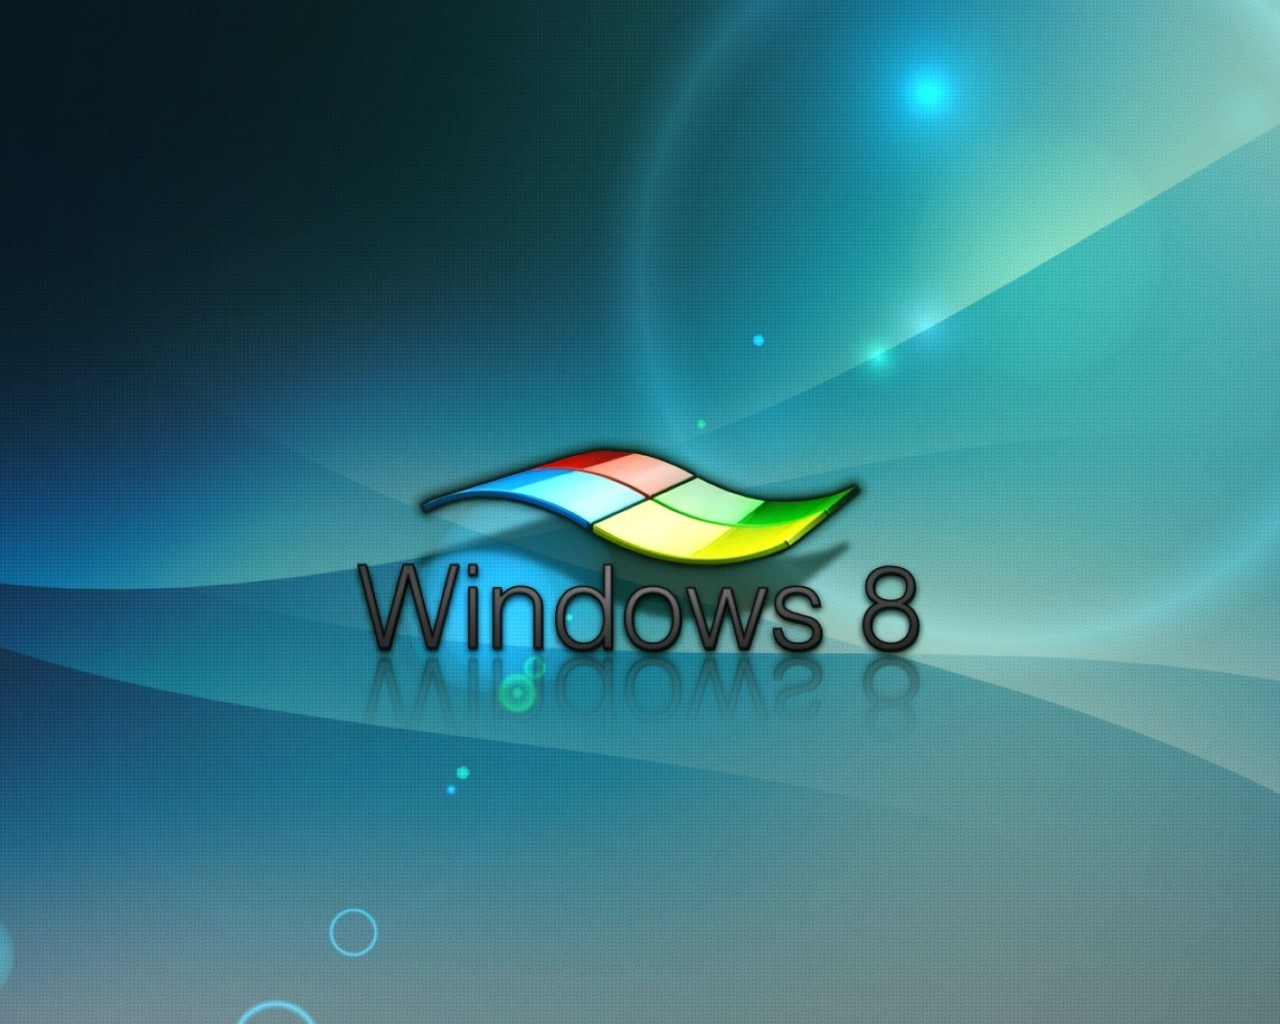 3D HD for Windows 8 Wallpaper: Desktop HD Wallpaper